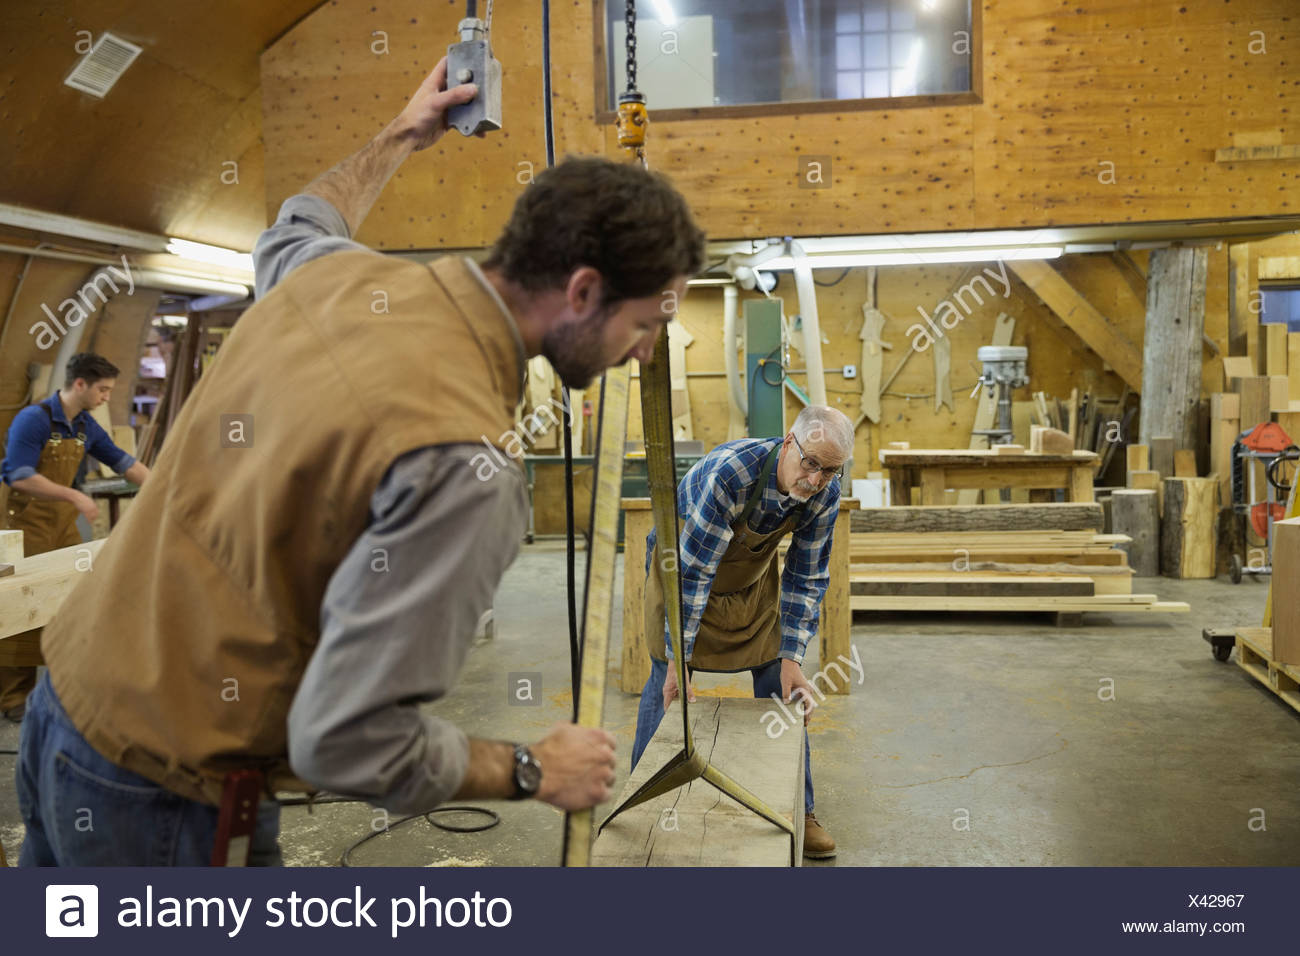 Woodworkers using hoist to move lumber in workshop - Stock Image